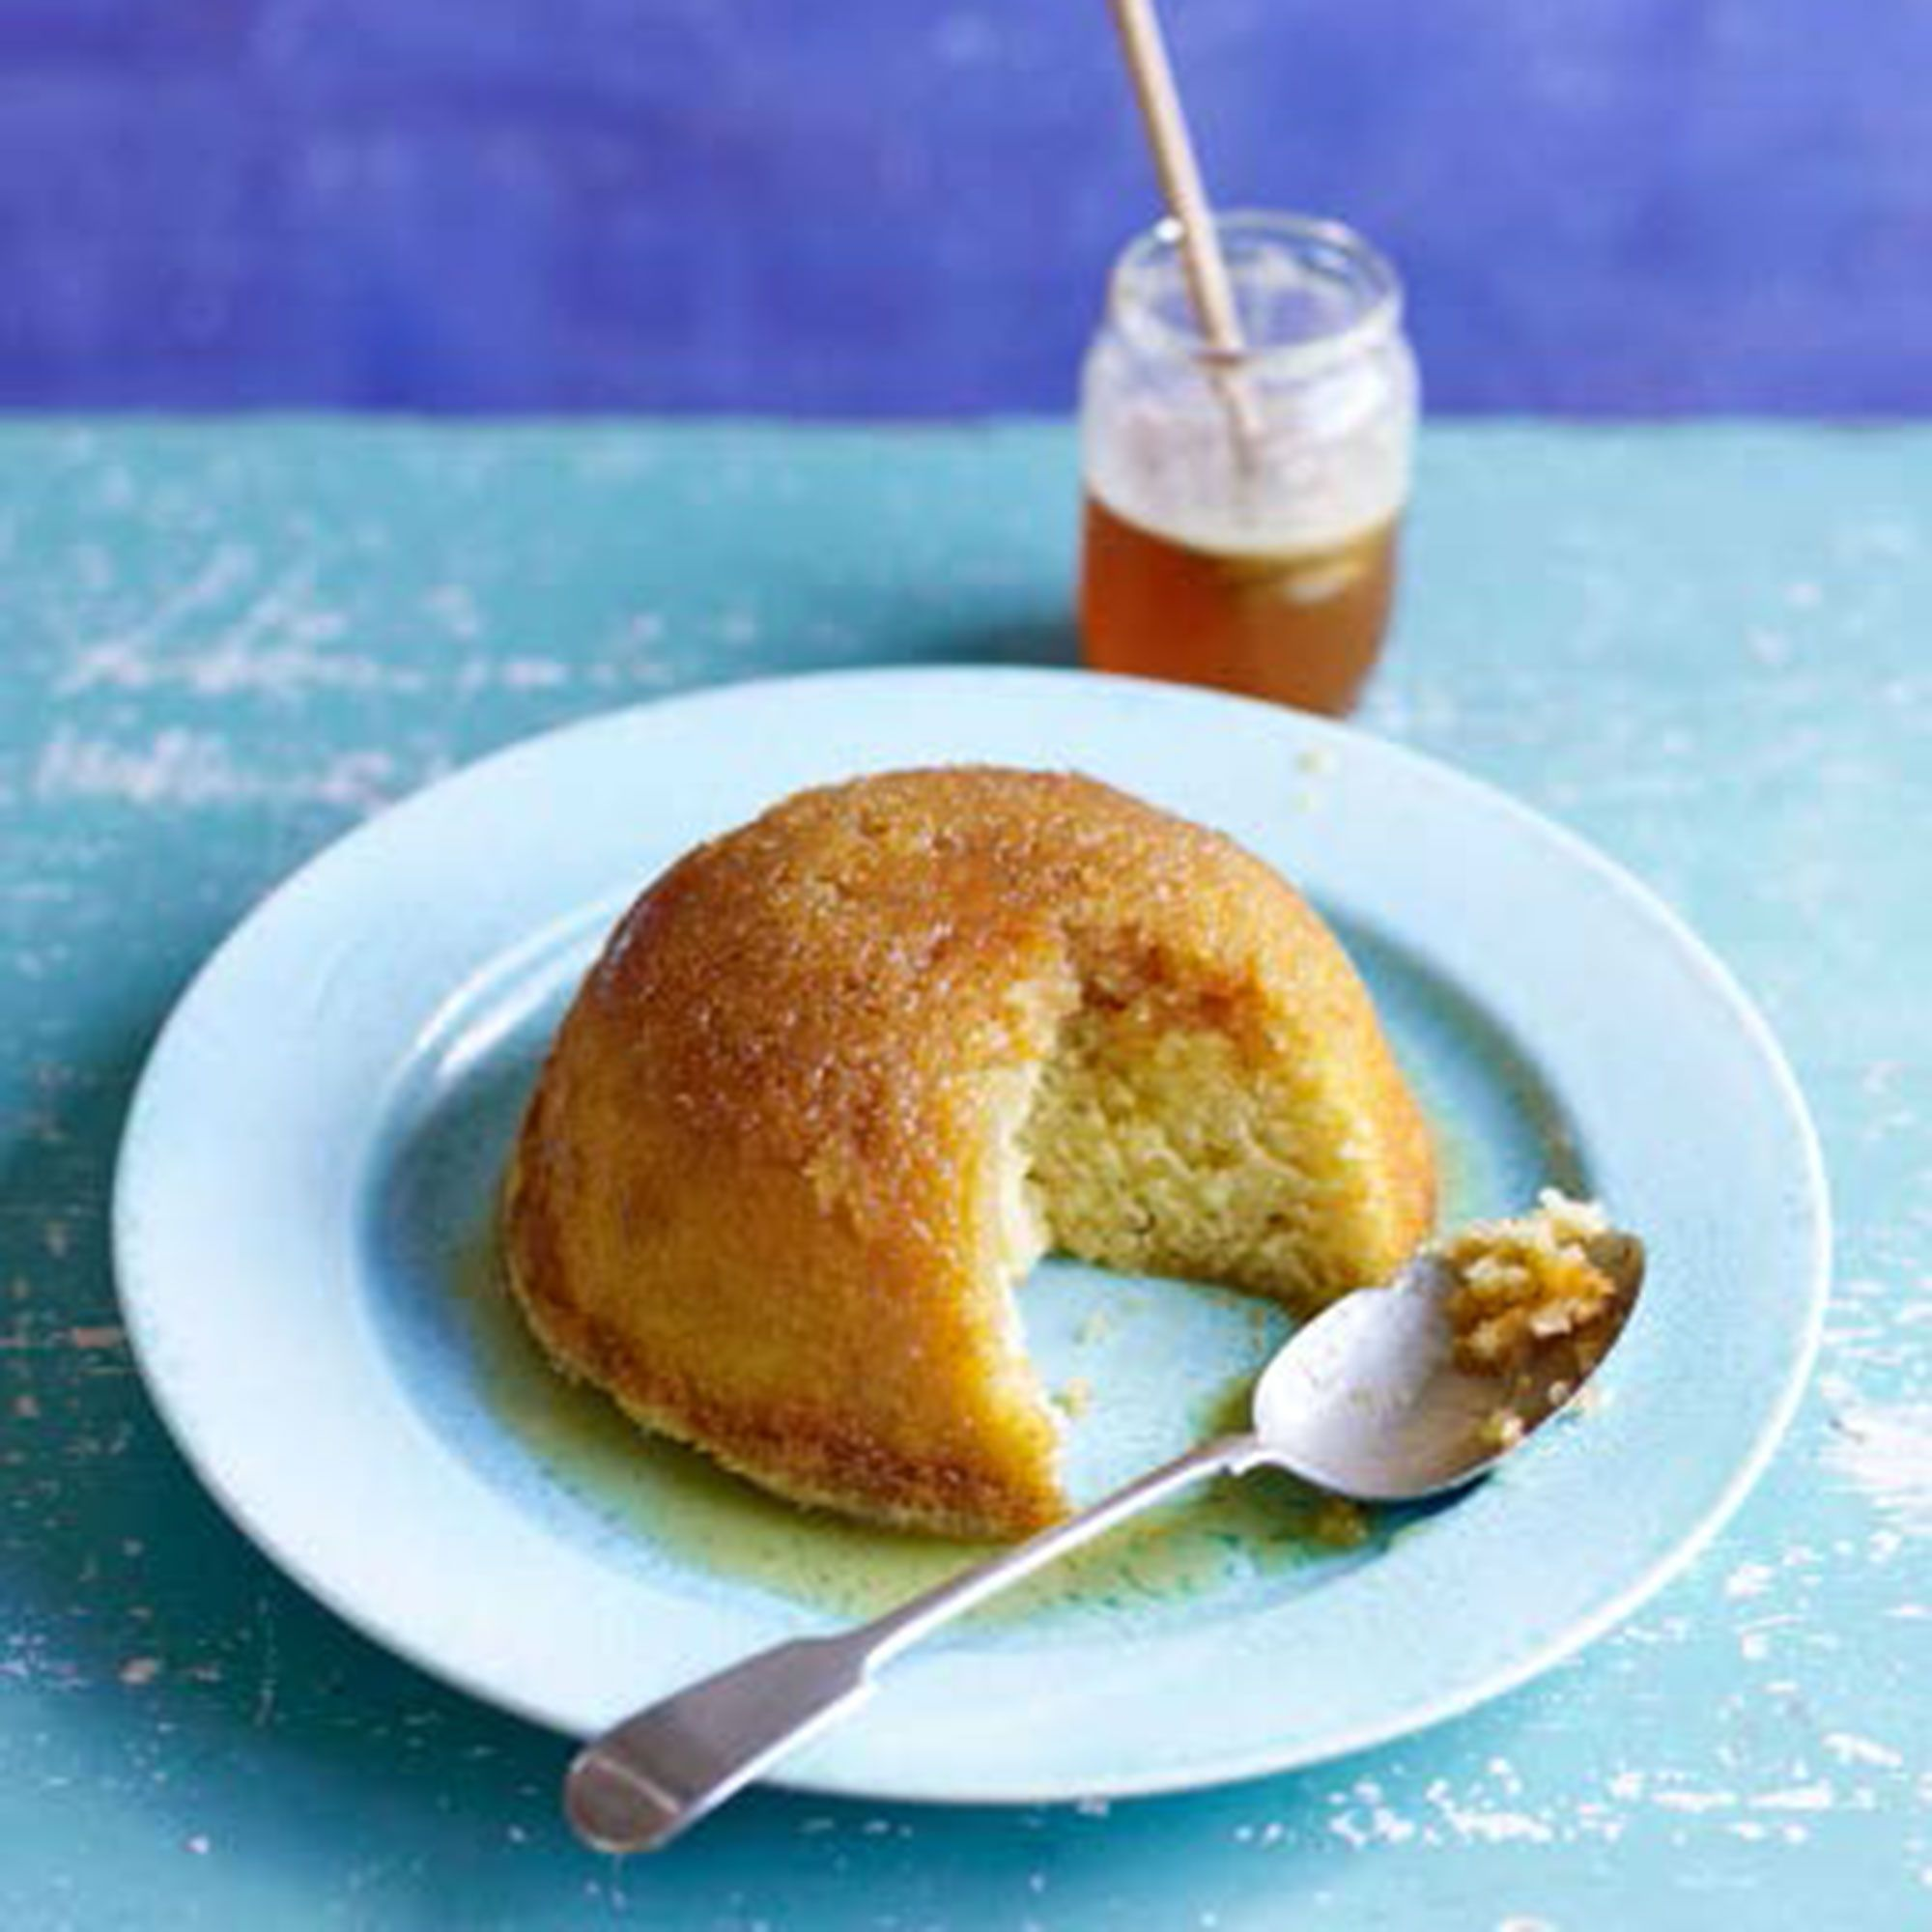 A light, fluffy steamed pudding that makes the most of fragrant Scottish heather honey. Taken from Paul Hollywood's Pies & Puds